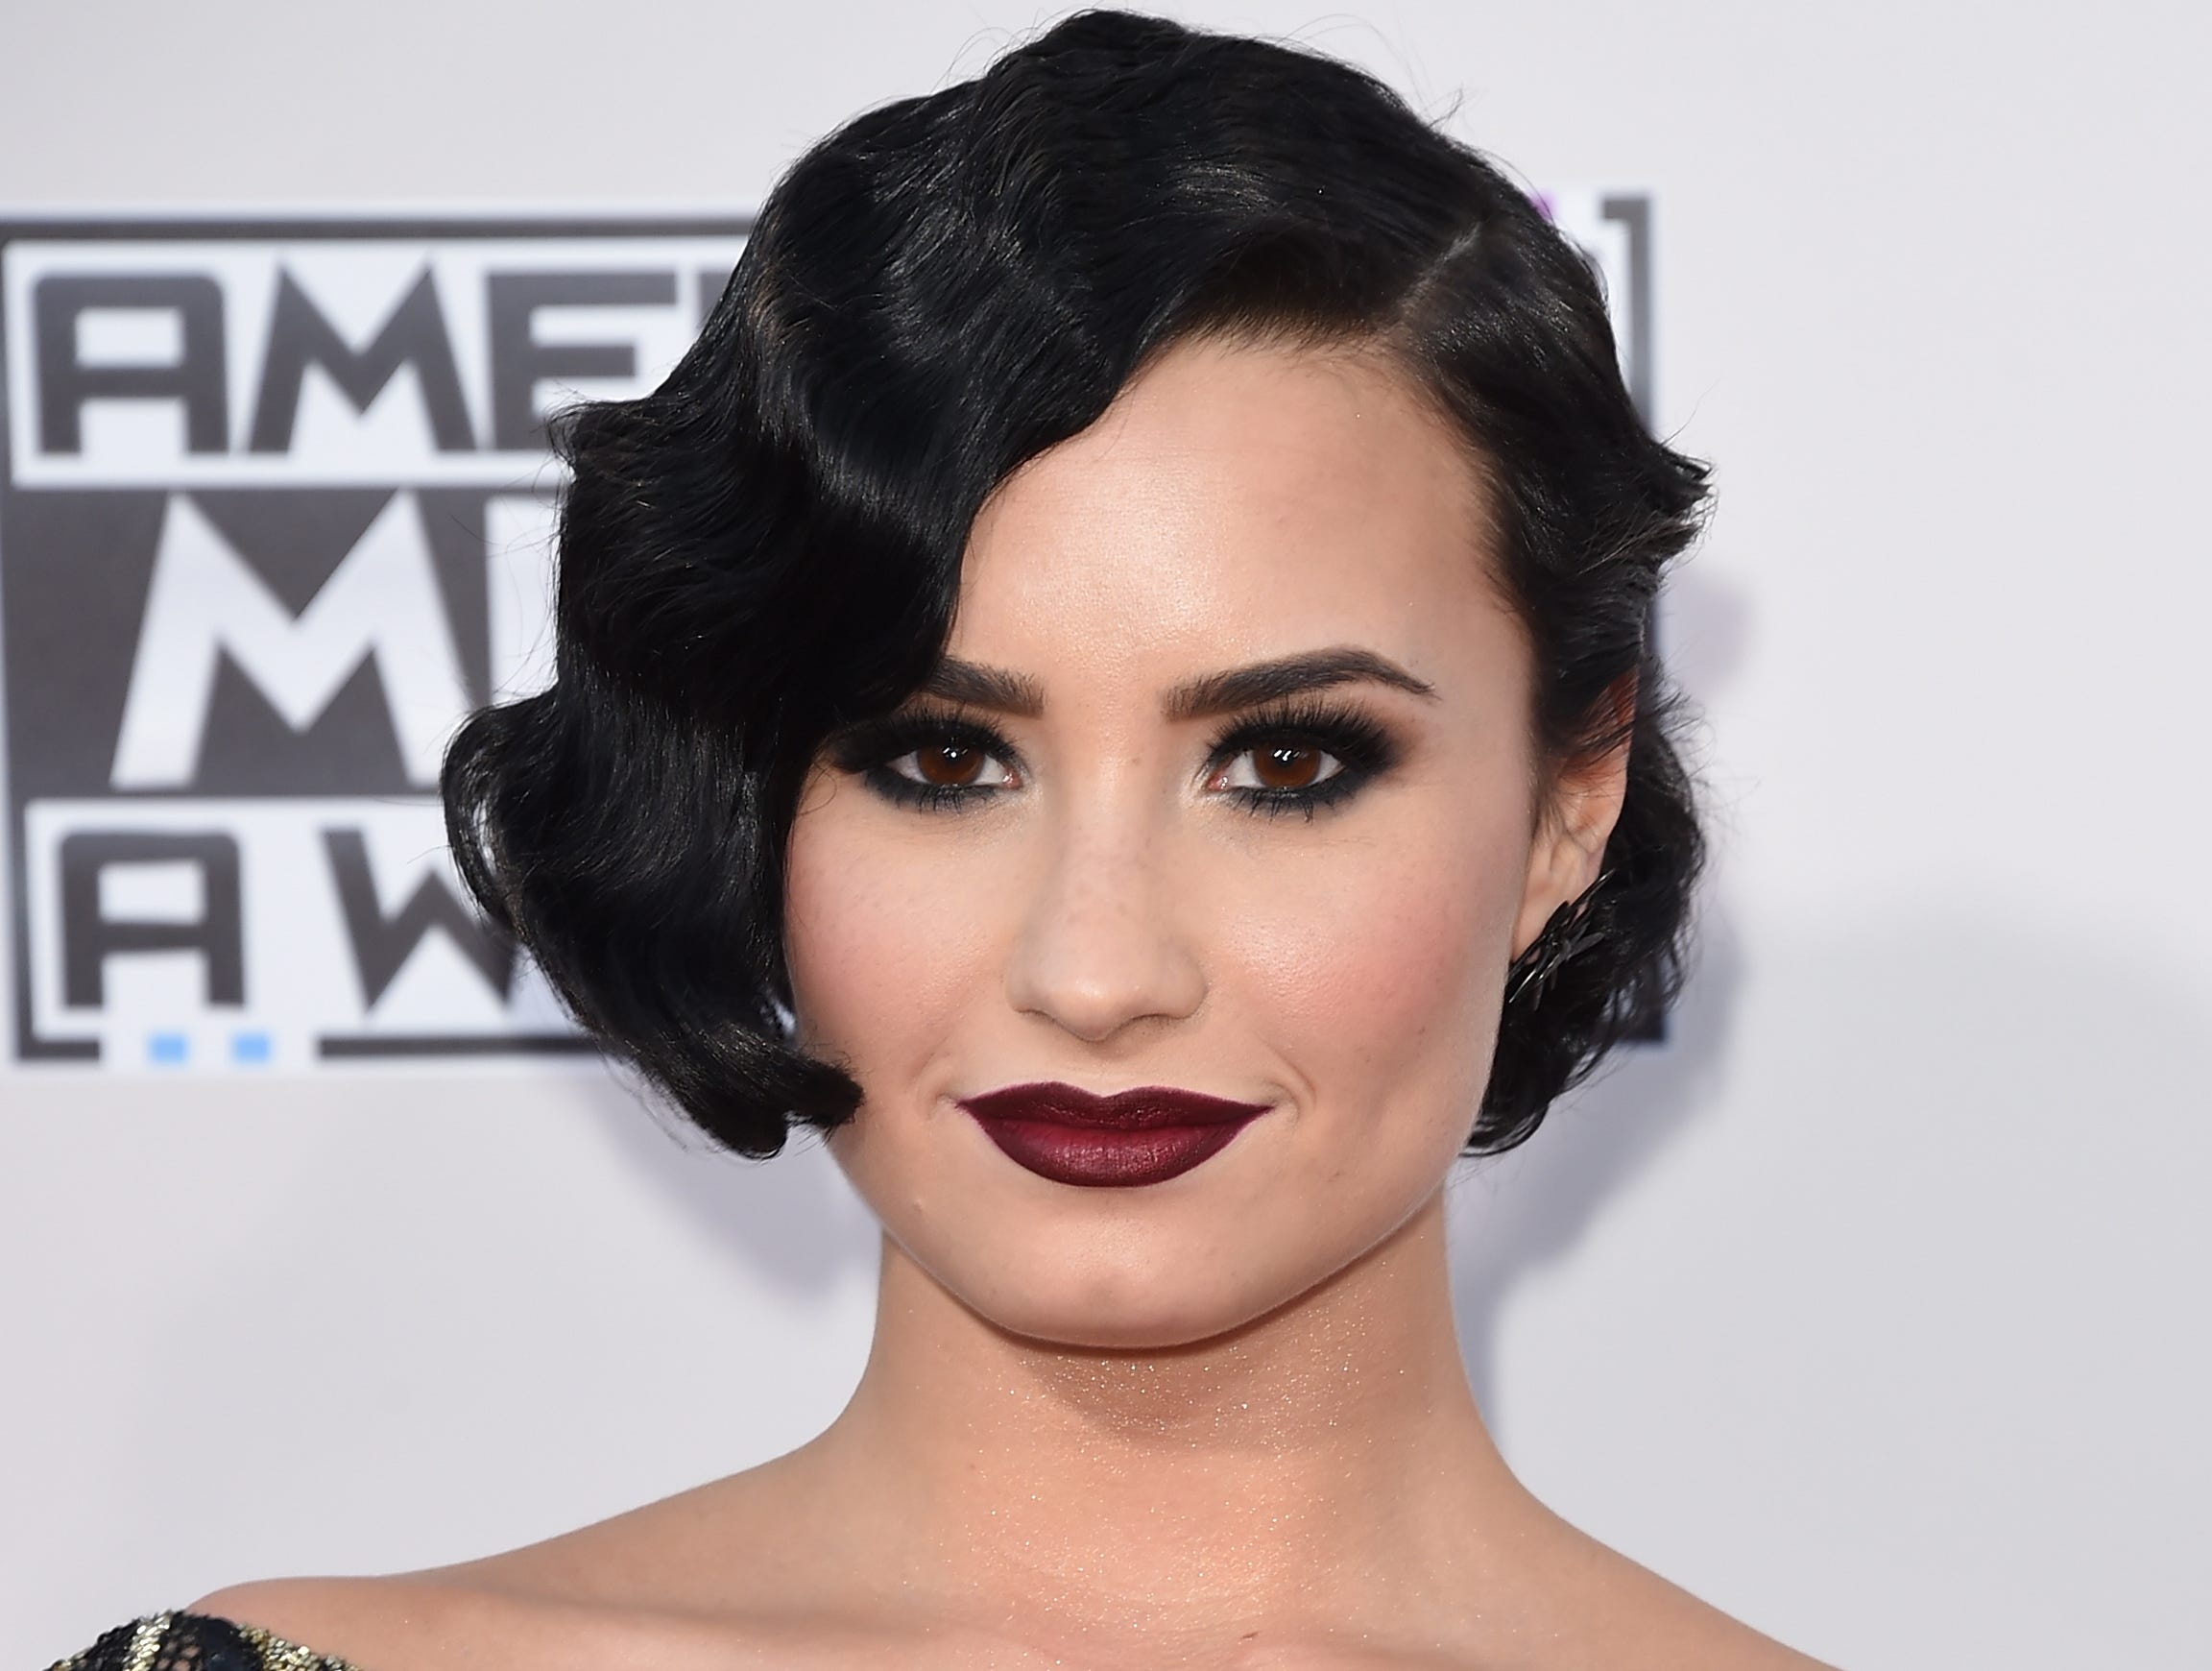 LOS ANGELES, CA - NOVEMBER 22:  Recording artist Demi Lovato attends the 2015 American Music Awards at Microsoft Theater on November 22, 2015 in Los Angeles, California.